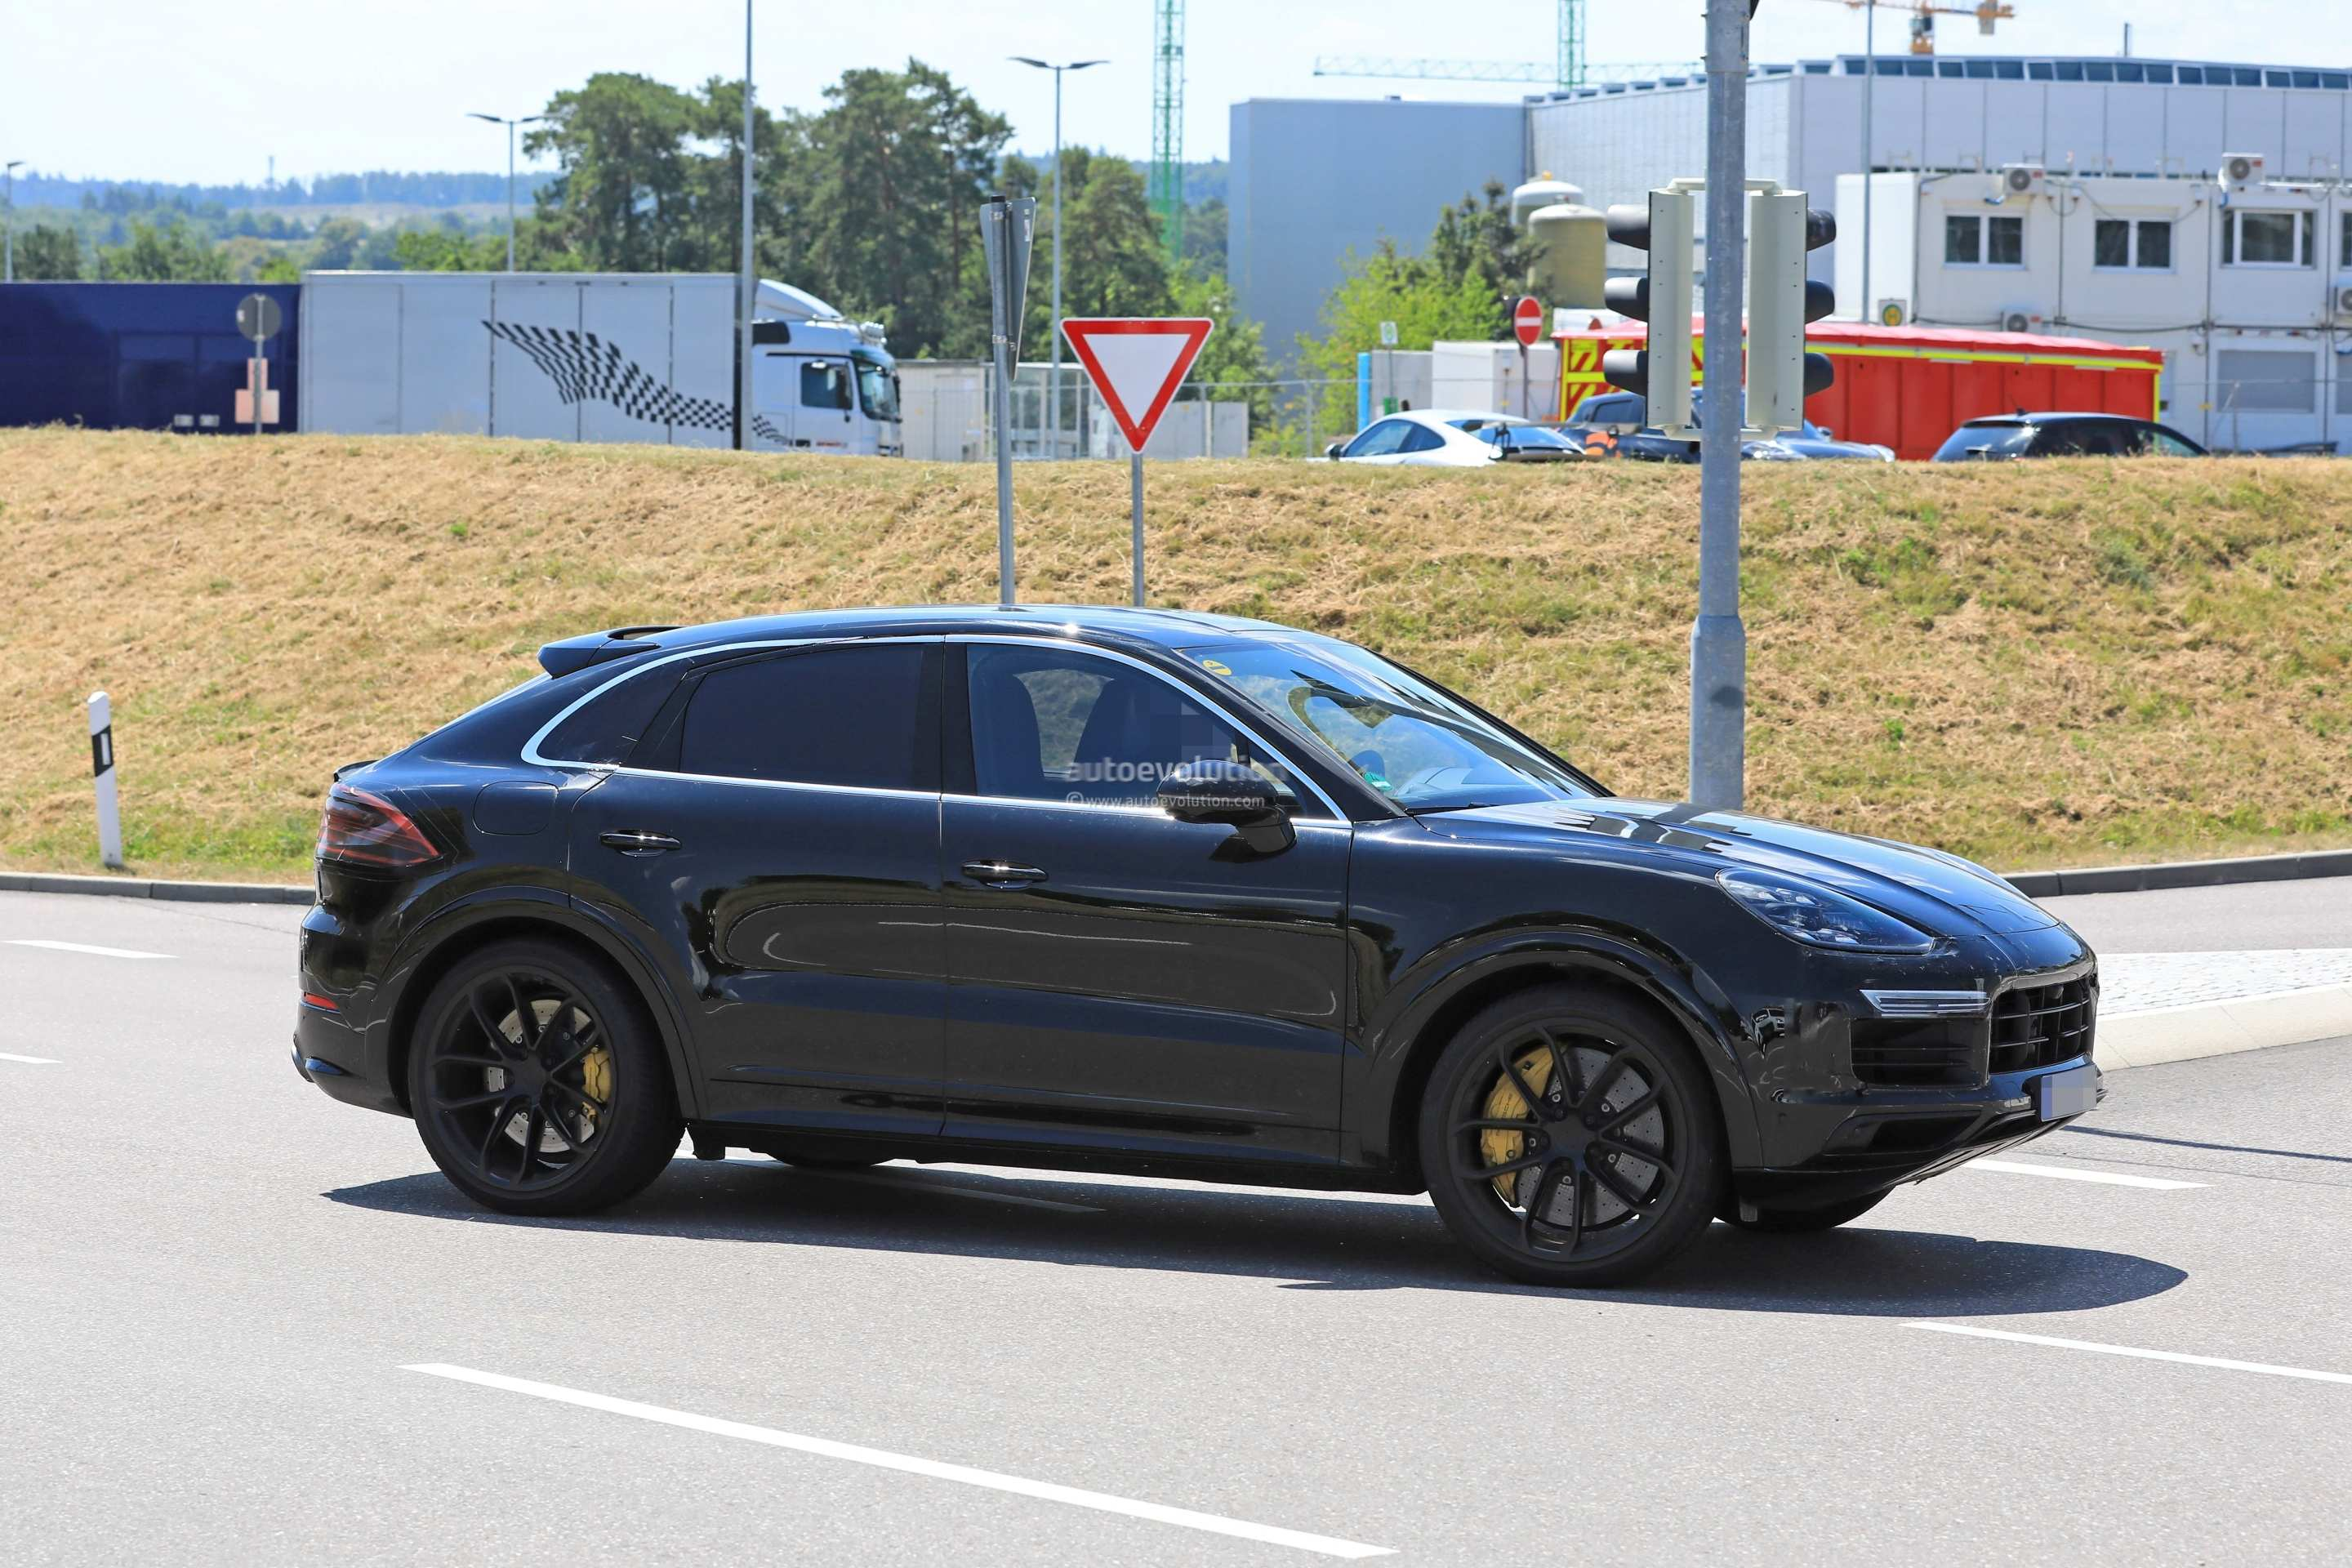 88 The 2020 Porsche Cayenne Model Redesign And Concept